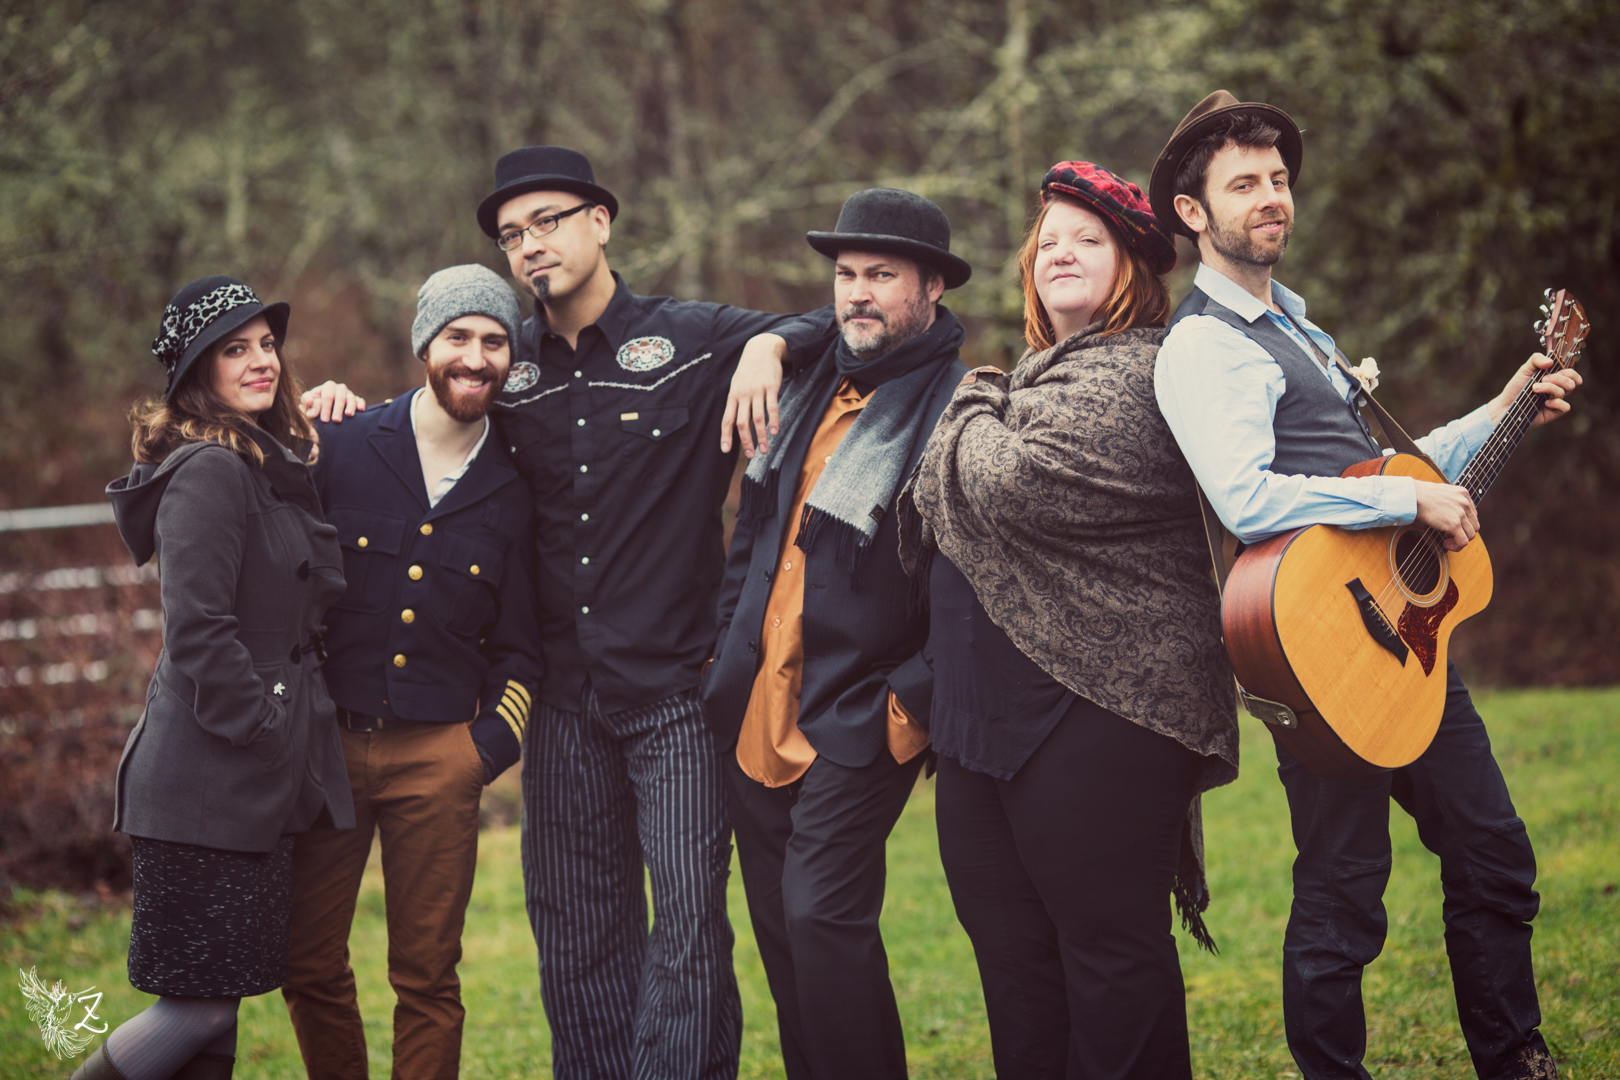 Band members (from left to right)  Sophie Bloch - Violin, vocals Gil Assays - Keyboards Jason Flores - Bass David Langenes - Guitars Katie Presley - Trumpet and accordion Robin Jackson - Vocals, guitar, sax, clarinet and whistling Photo Credit: Zippy Lomax